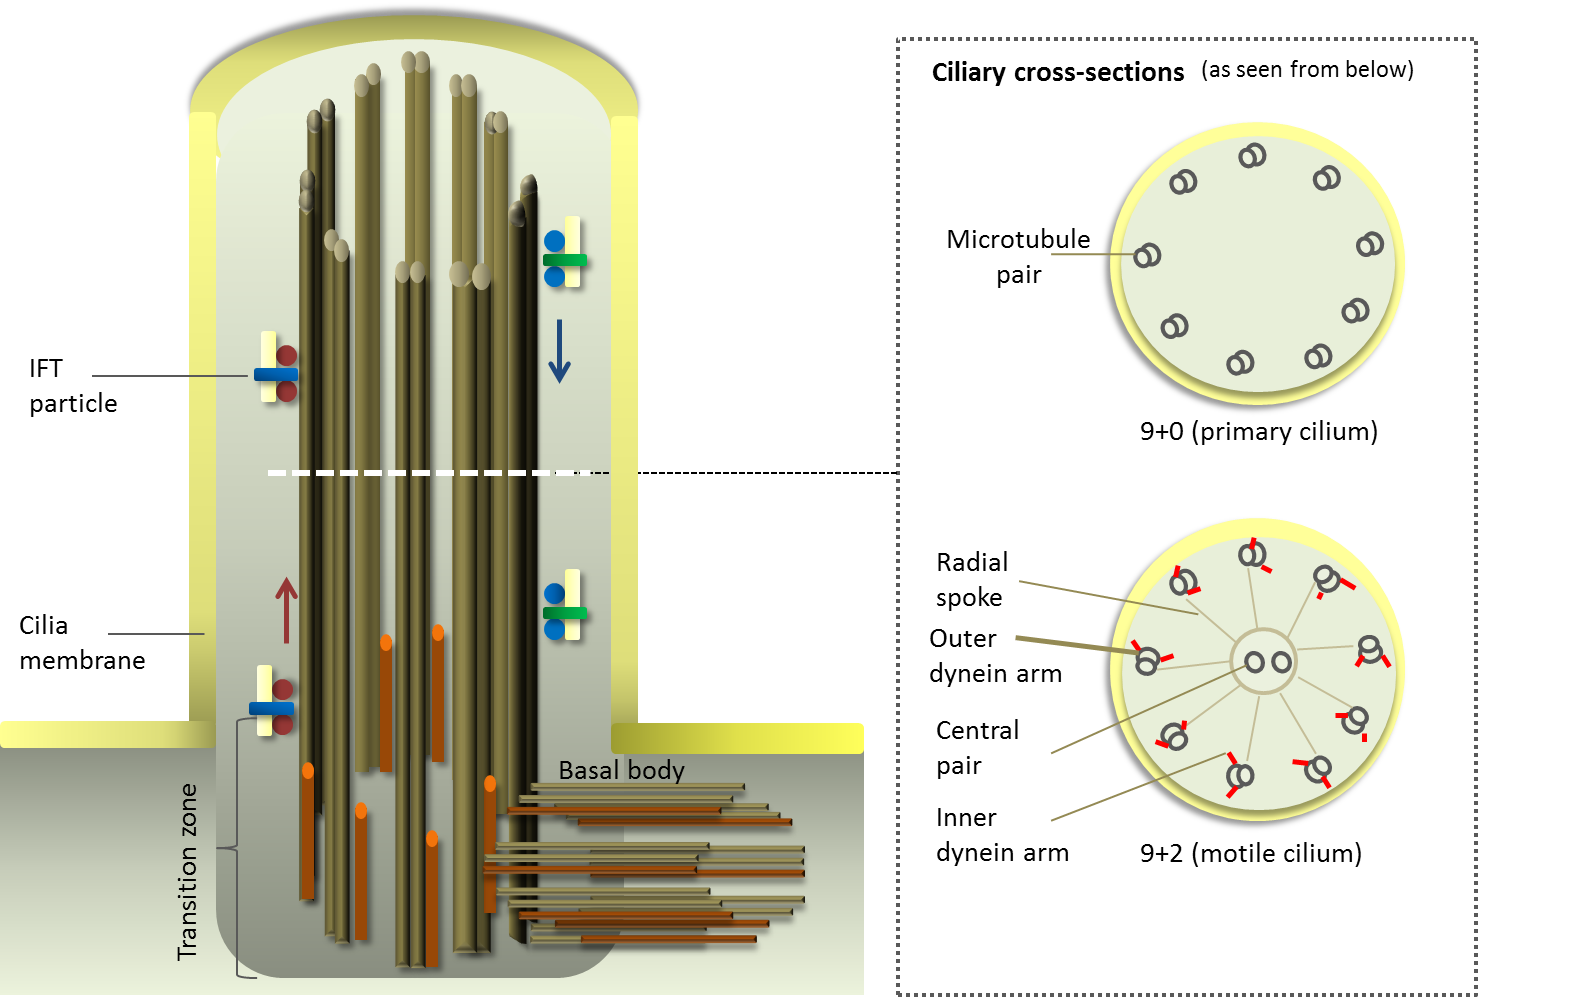 Structure And Function Of Cilia